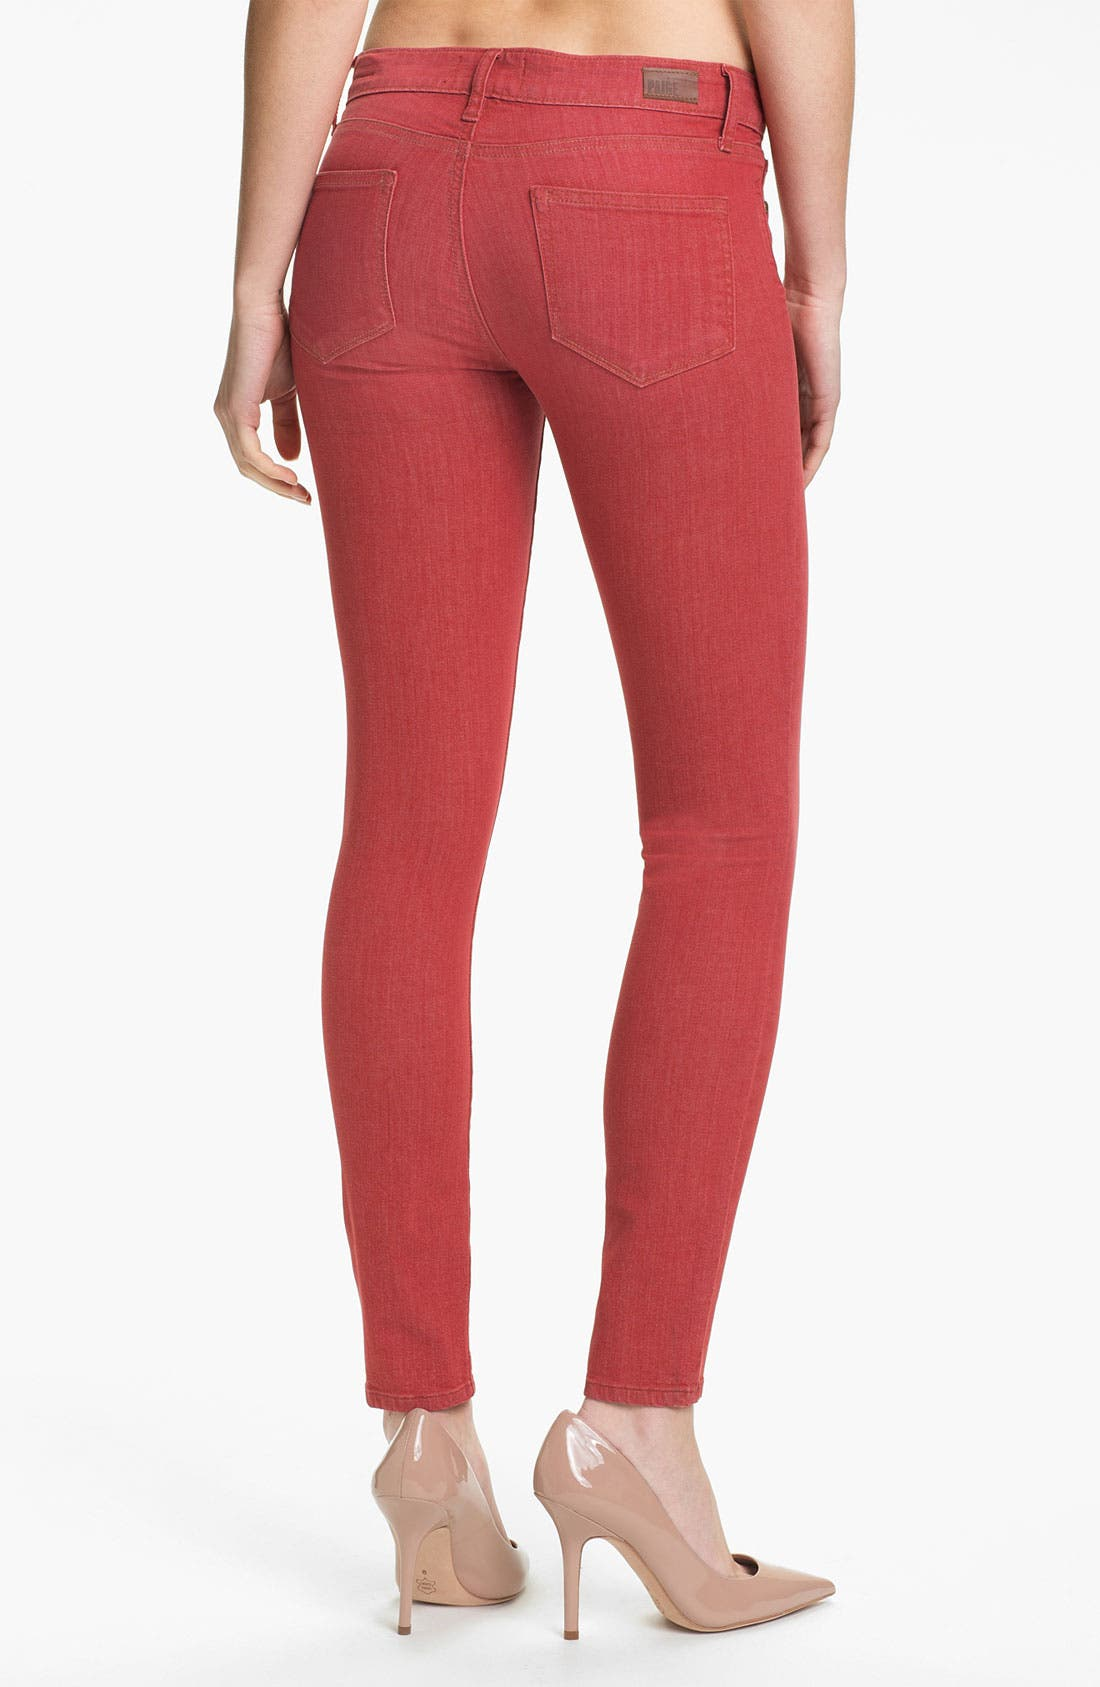 Alternate Image 2  - Paige Denim 'Verdugo' Skinny Stretch Denim Jeans (Vintage Red)